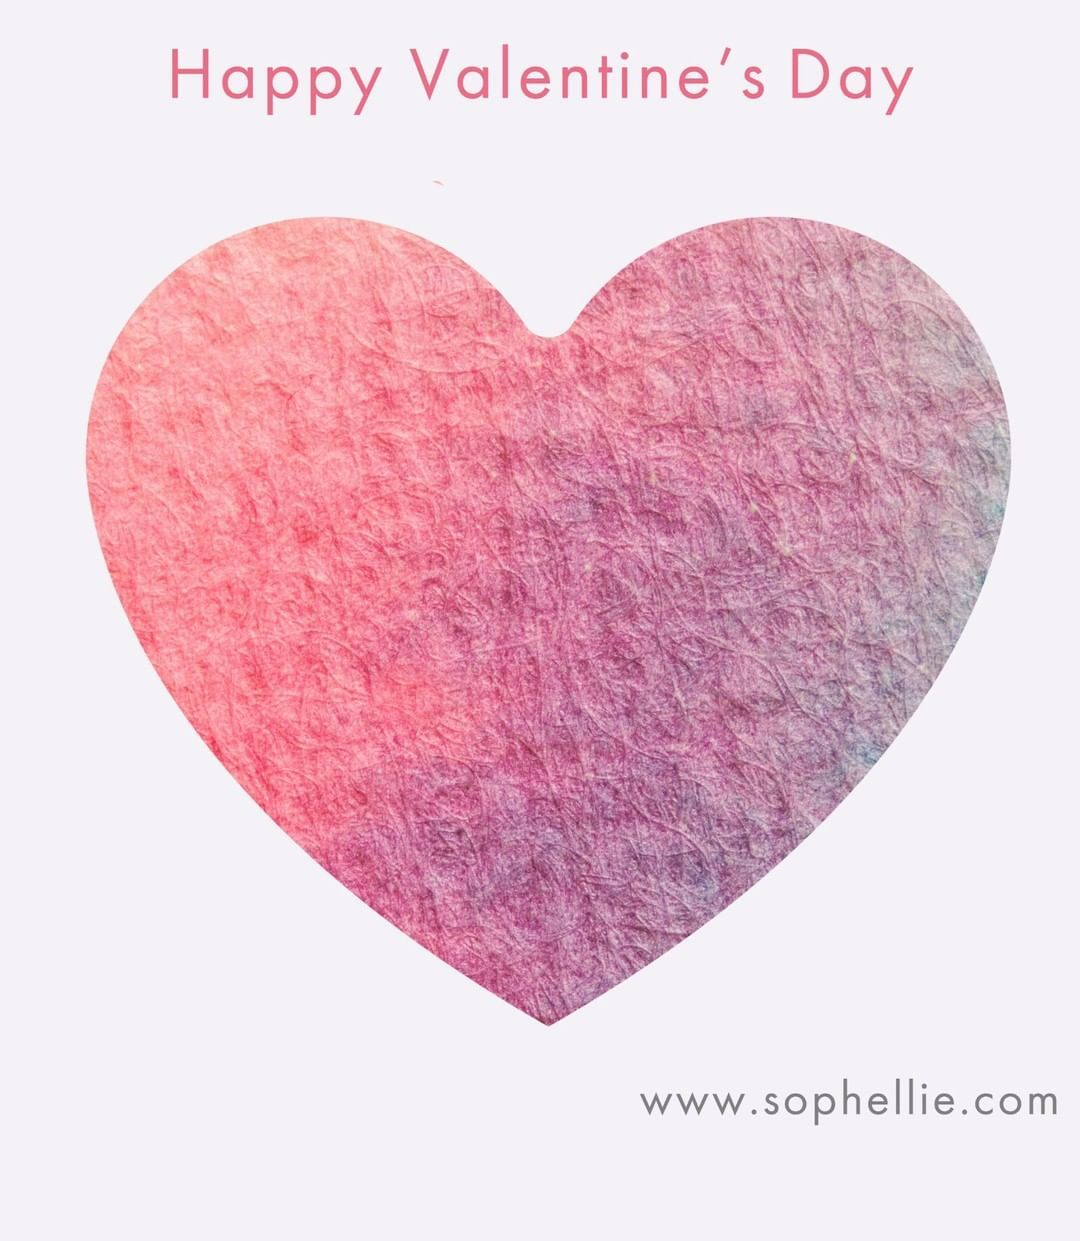 @sophelliejewellery posted to Instagram: Happy Valentine's Day to you all...  I hope you all have a lovely day whether it is something you celebrate or not 🤩  #happyvalentinesday #loveisintheair #starjewellery #sterlingsilverstarjewellery #swarovskicrystal #healingcrystals #etsyuk #heartjewellery #keepsakegifts #shophandmadeuk #www.sophelliejewellery.com #etsymakers #britcraft #makersuk #handmadejewellery #getyourcraftseen #shopindependant #supporthandmade #supportlocal #shopsmall #s